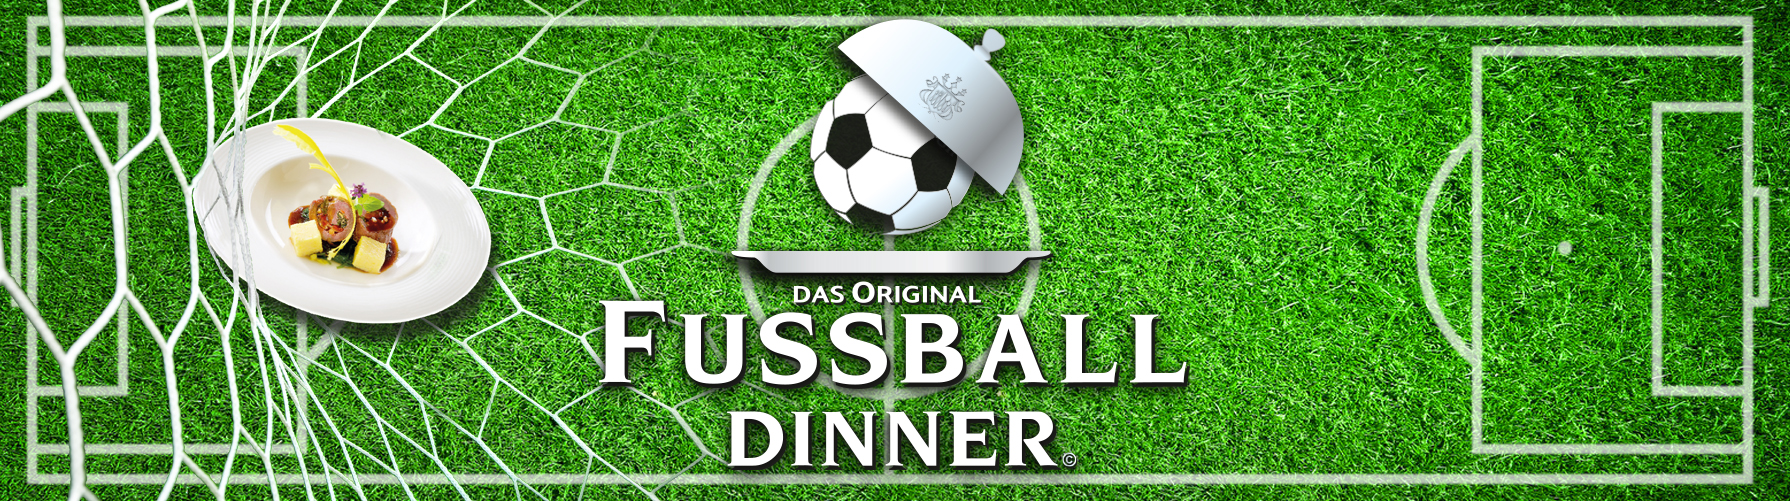 Das Original Fußball Dinner von WORLD of DINNER